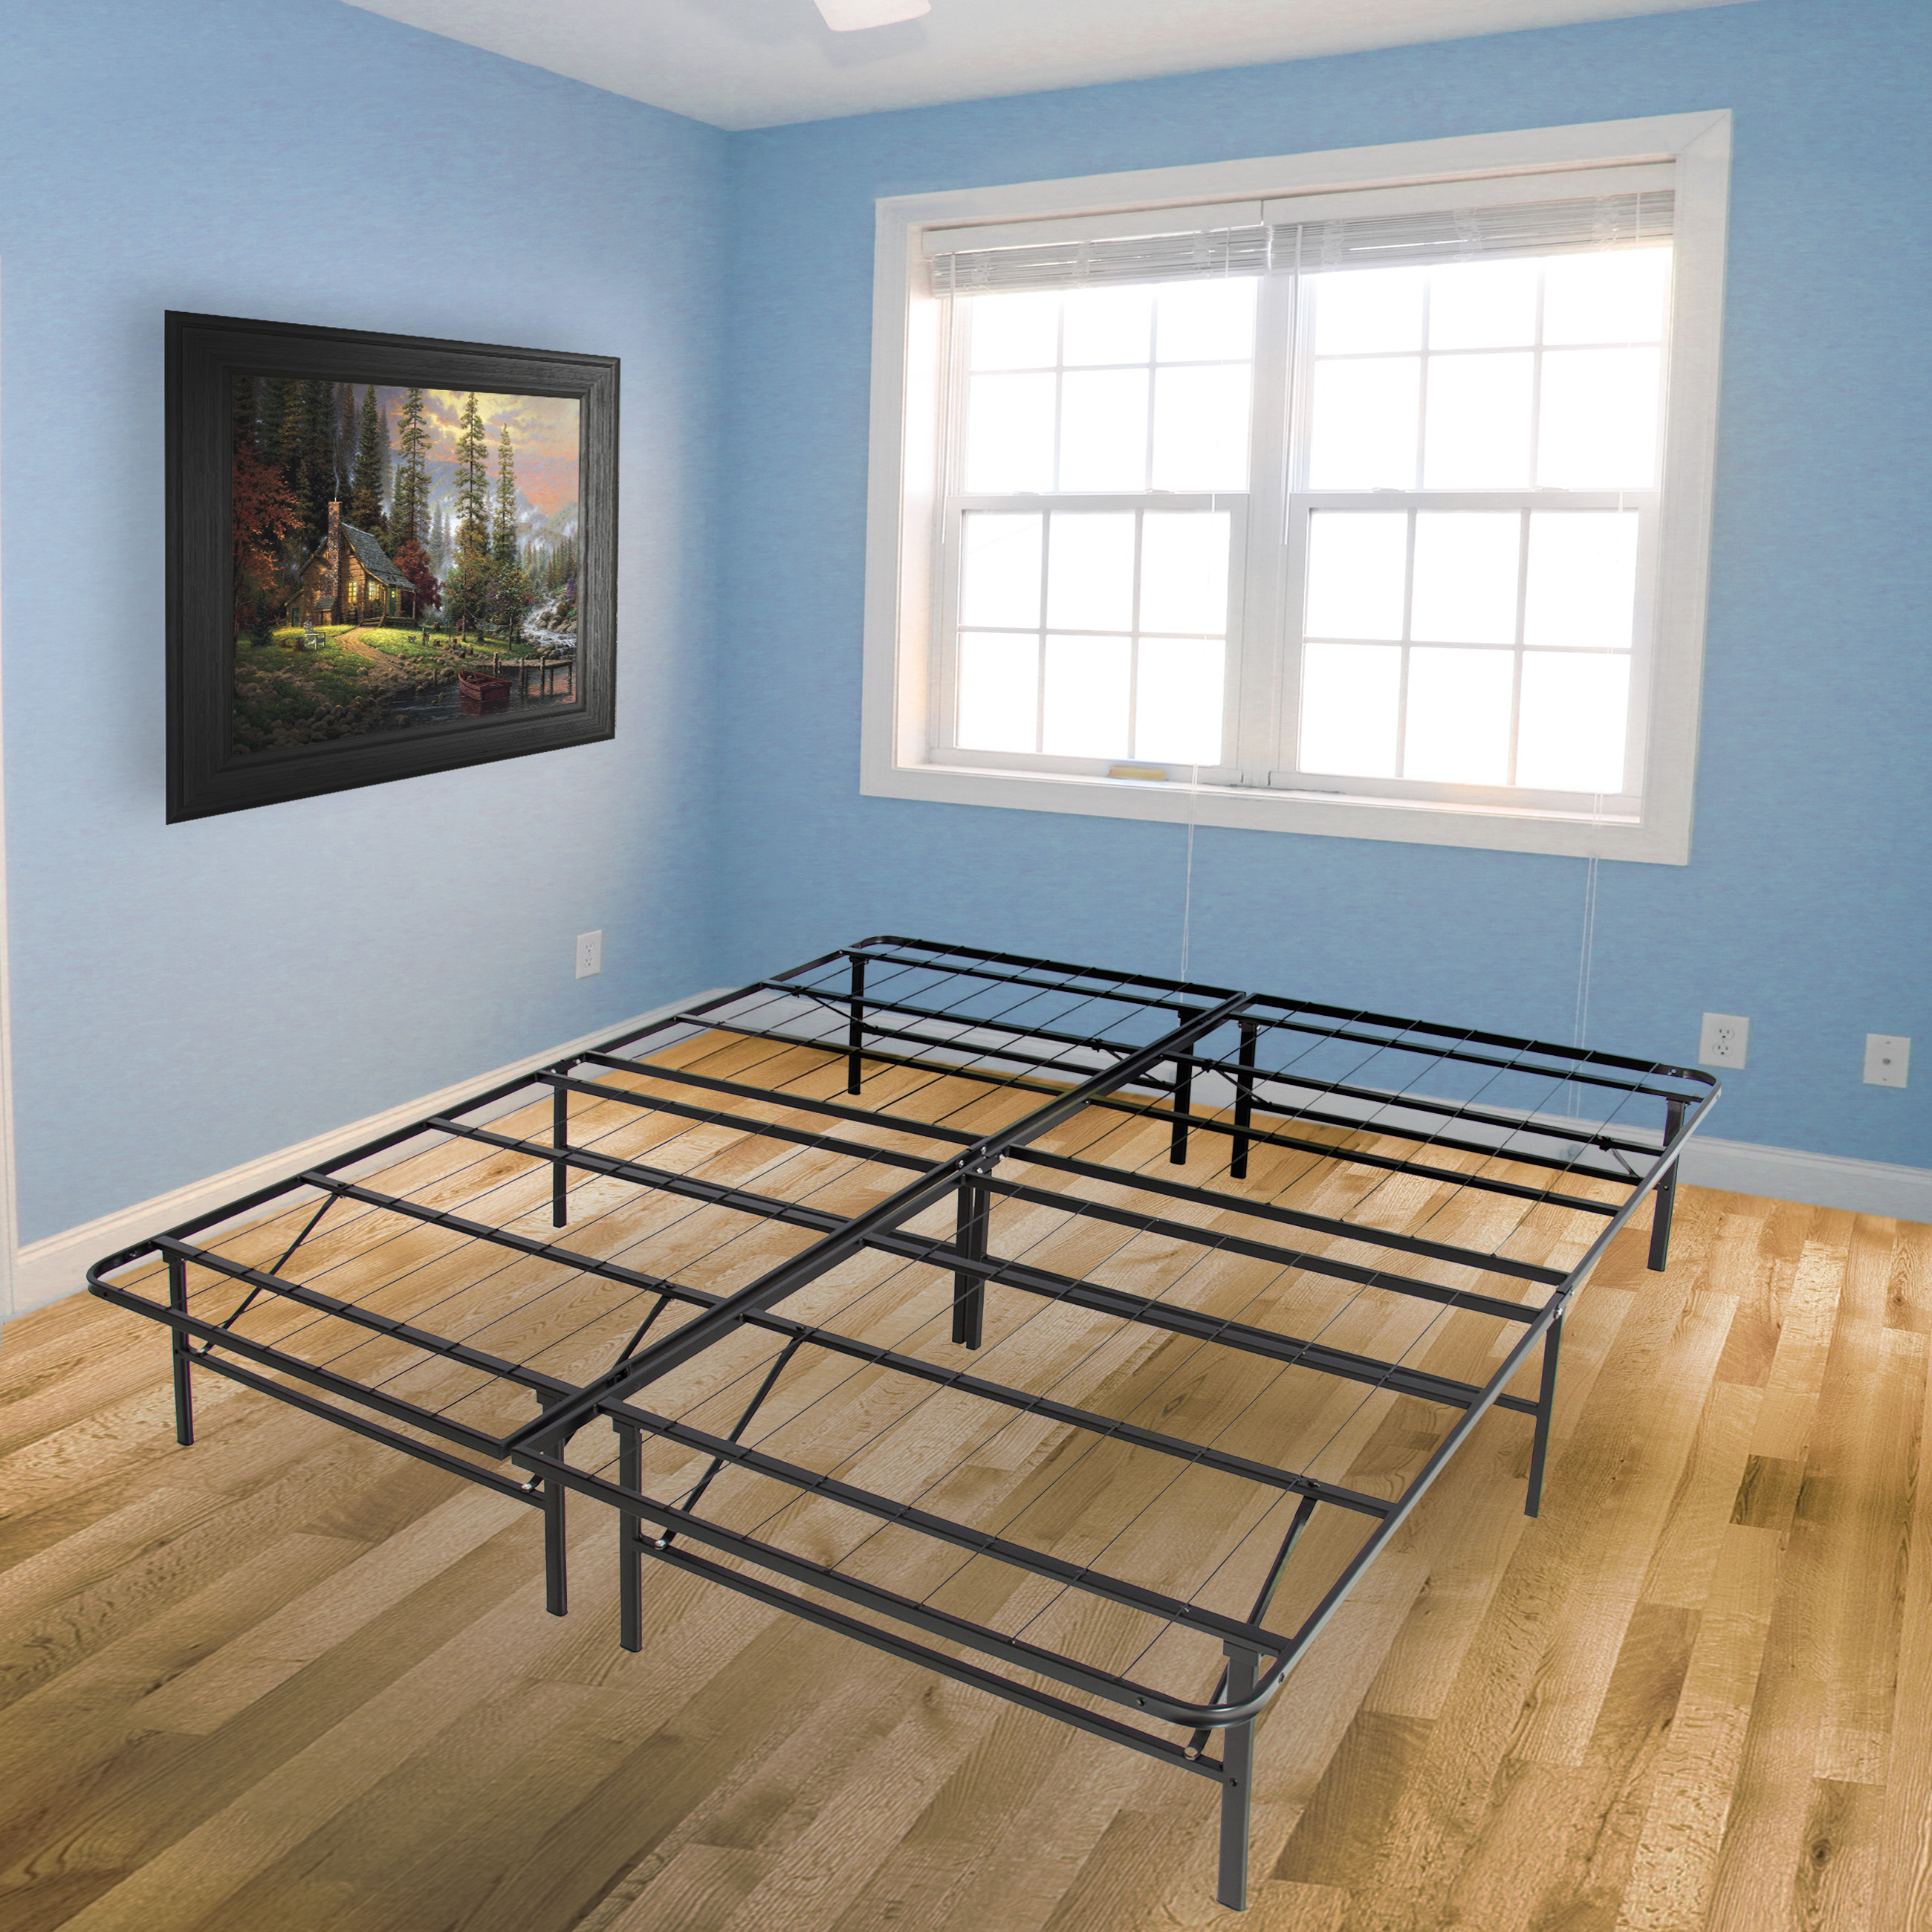 Best Choice Products Platform Metal Bed Frame Foldable No Box Spring Needed Mattress Foundation Queen